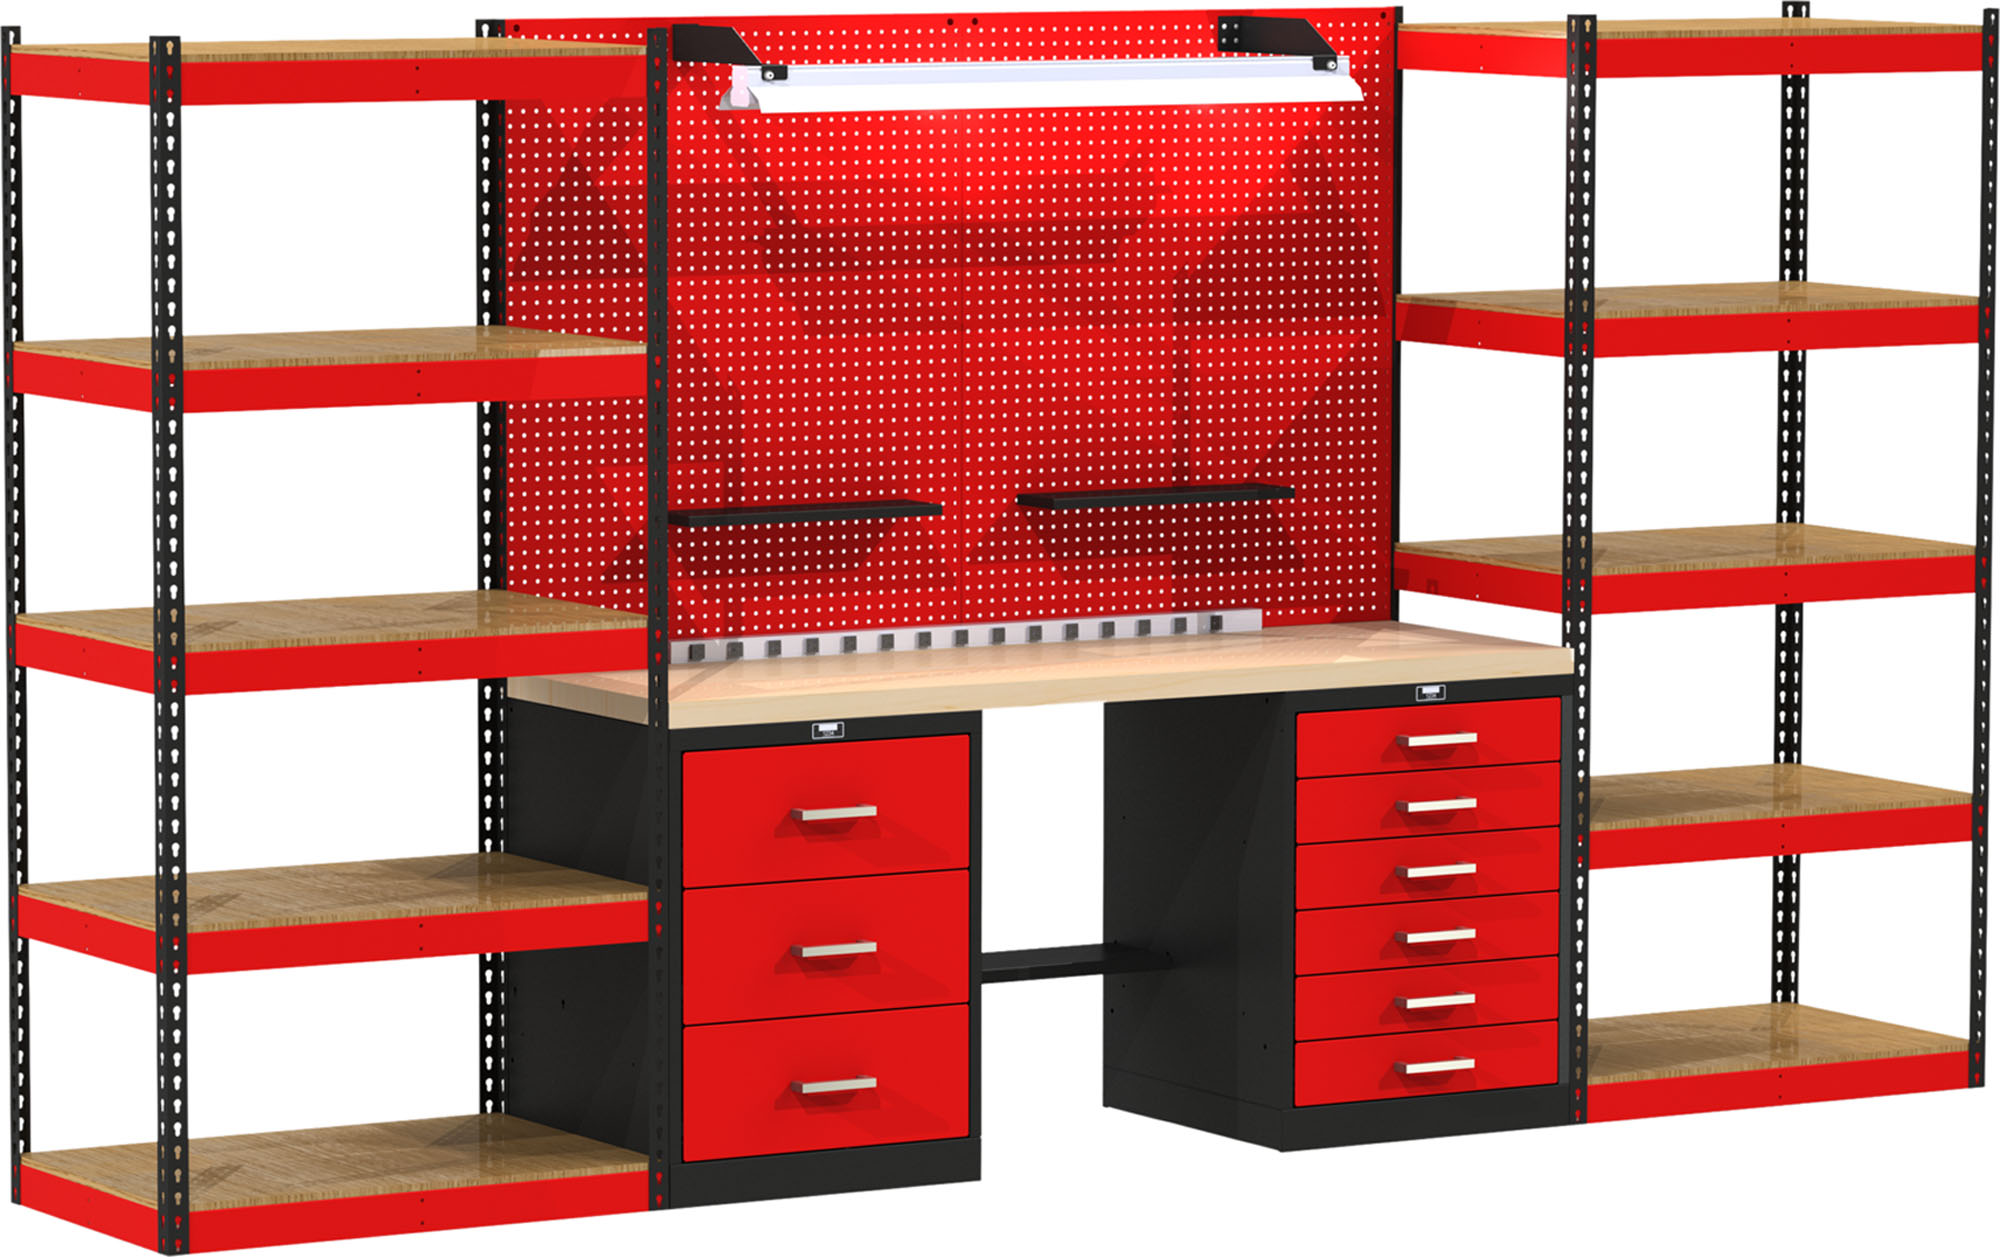 Fort Knox Modular Utility Workbench - Open Storage System With Wood Top, Model FKOPENSTOR-LG-M